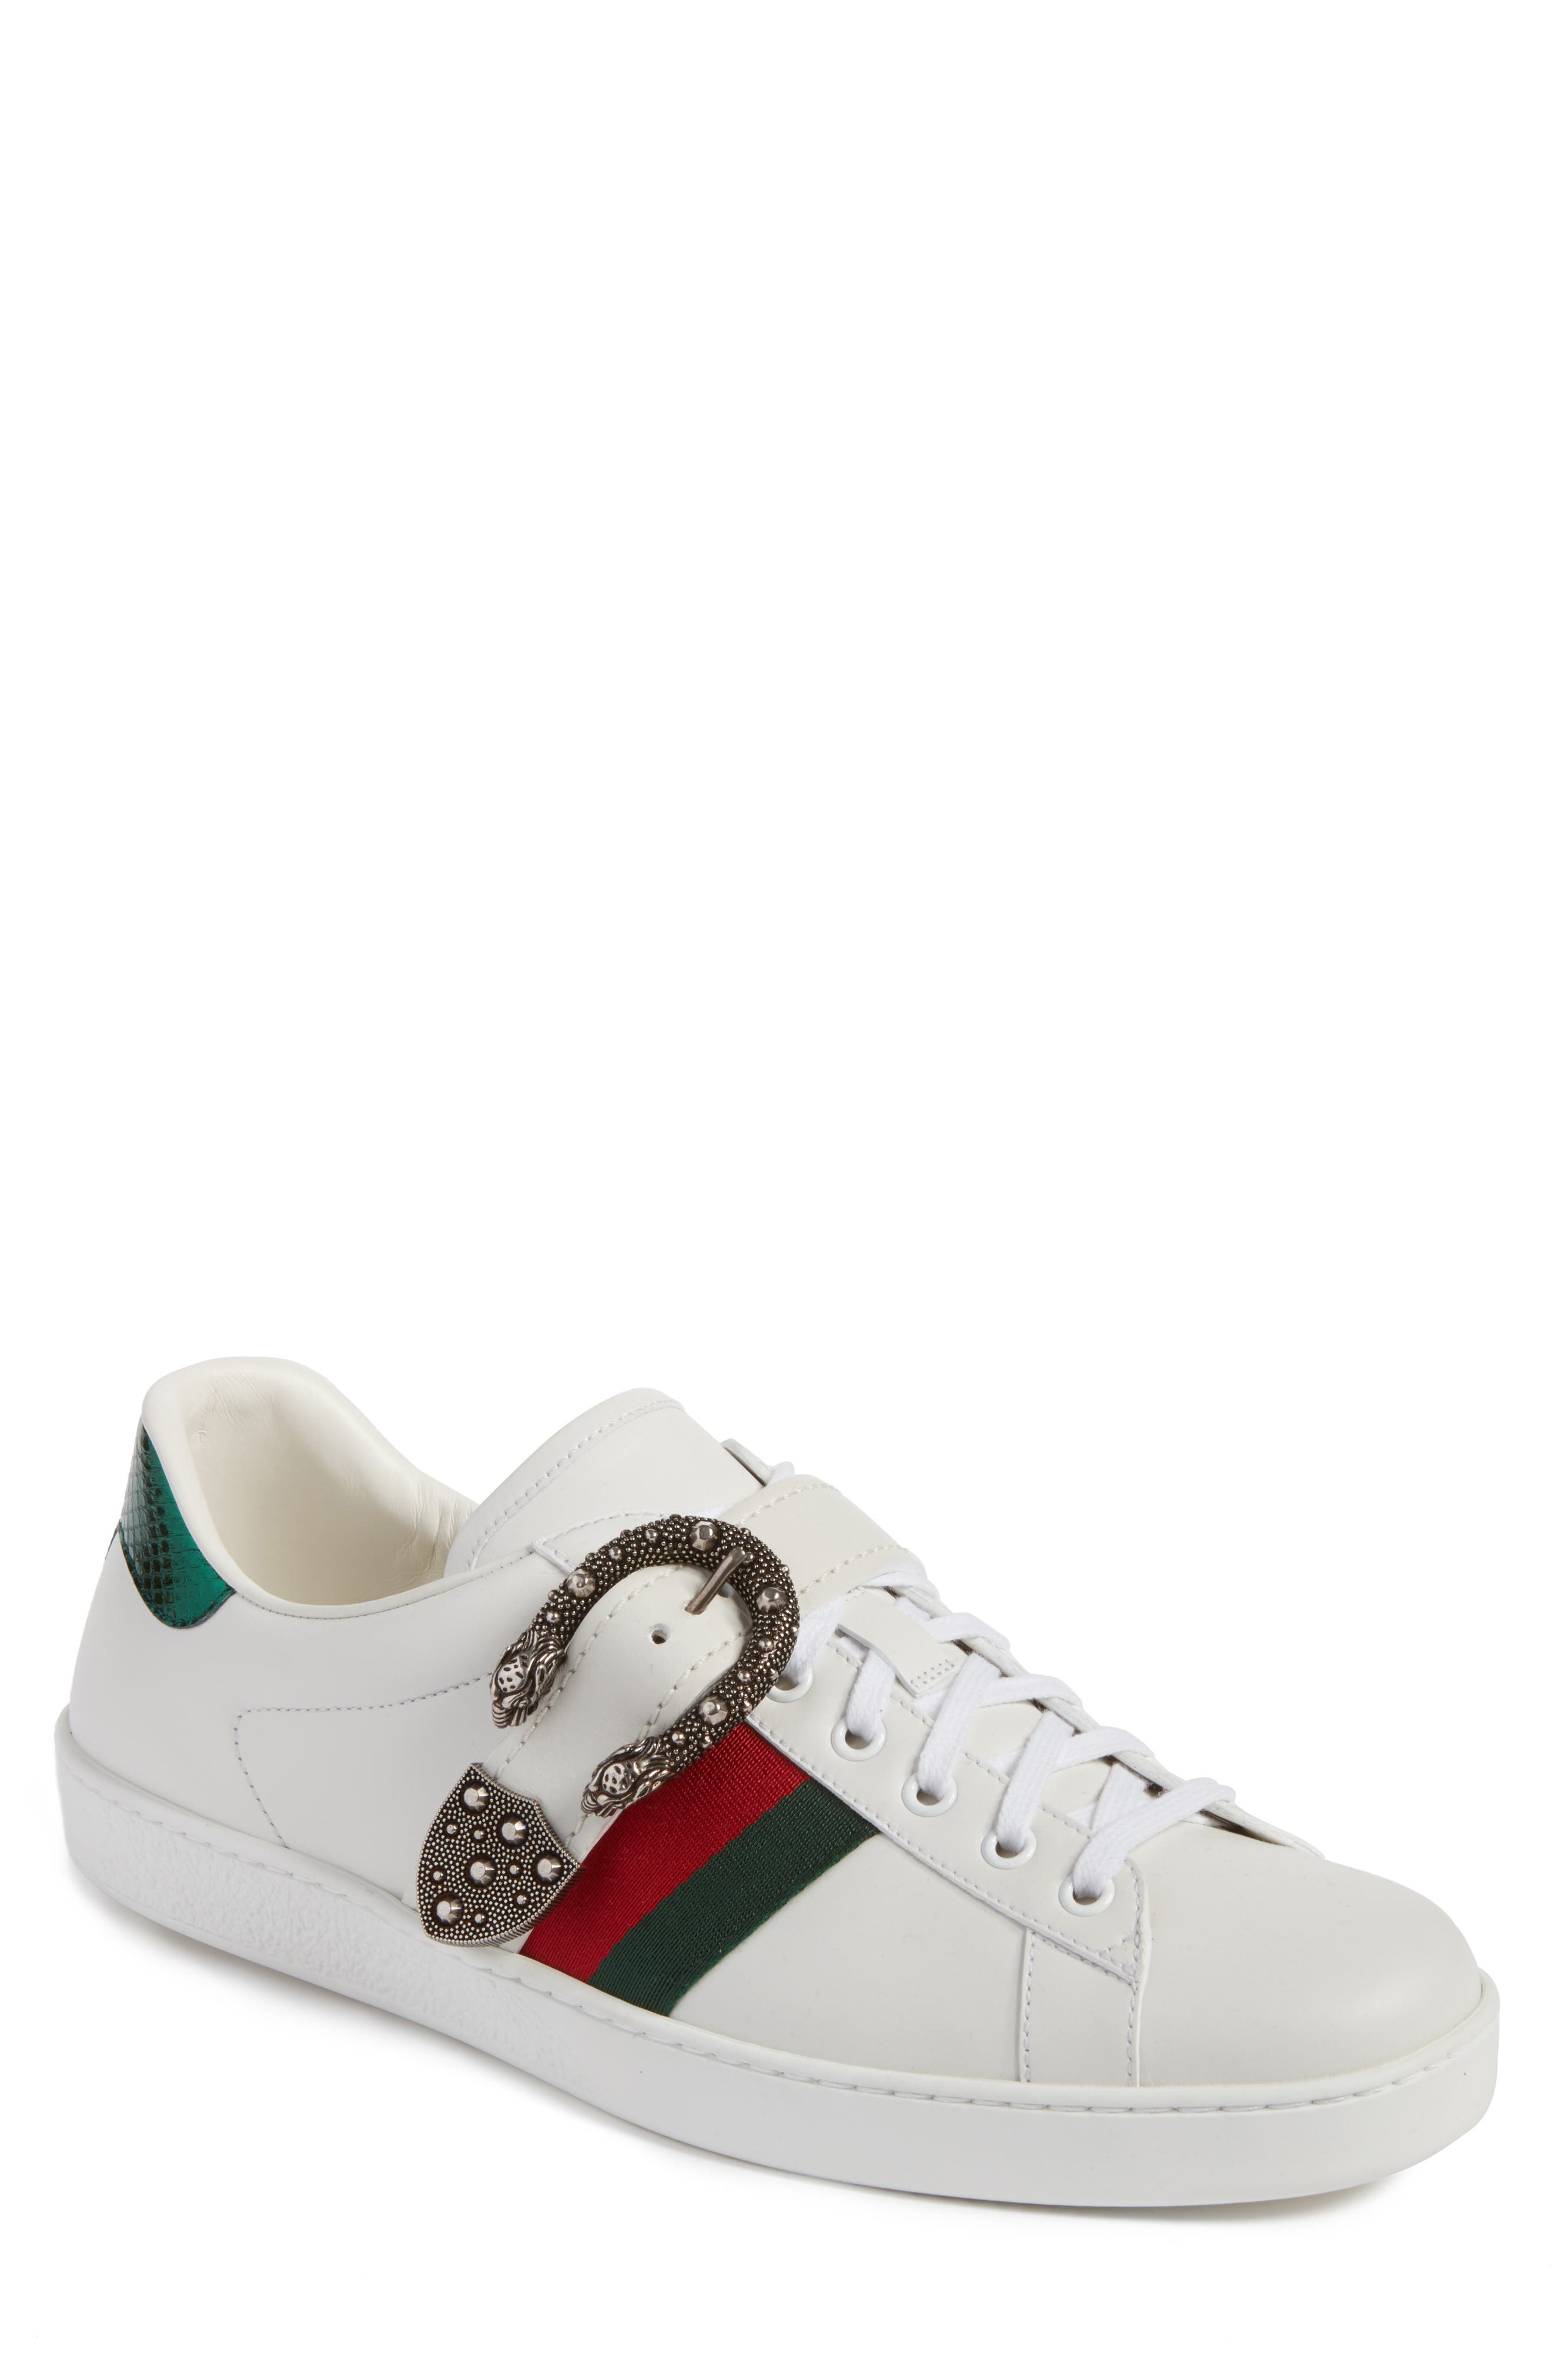 Gucci New Ace Dionysus Buckle Low Top Sneaker (Men)